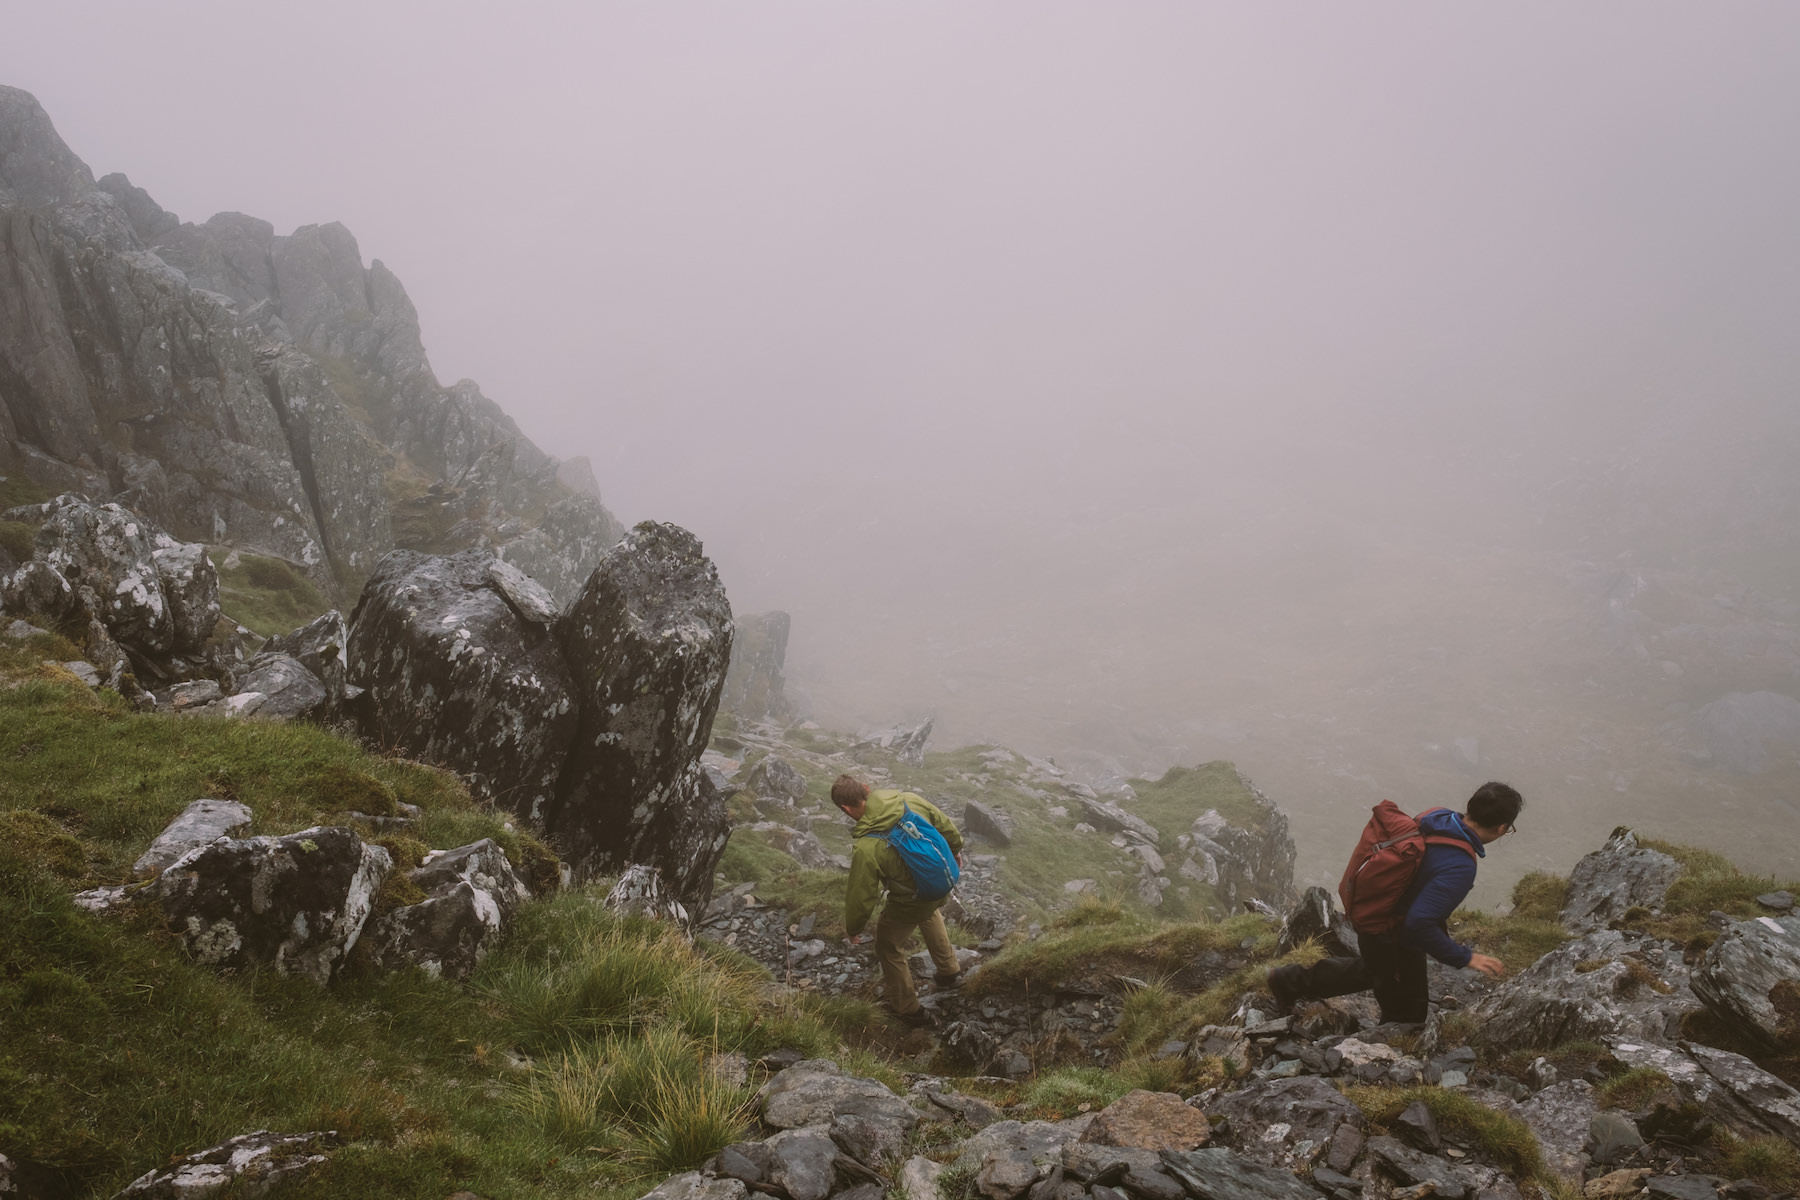 Scrambling over mountains in the mist.  Fuji X-H1 + 23mm 1.4 Lens